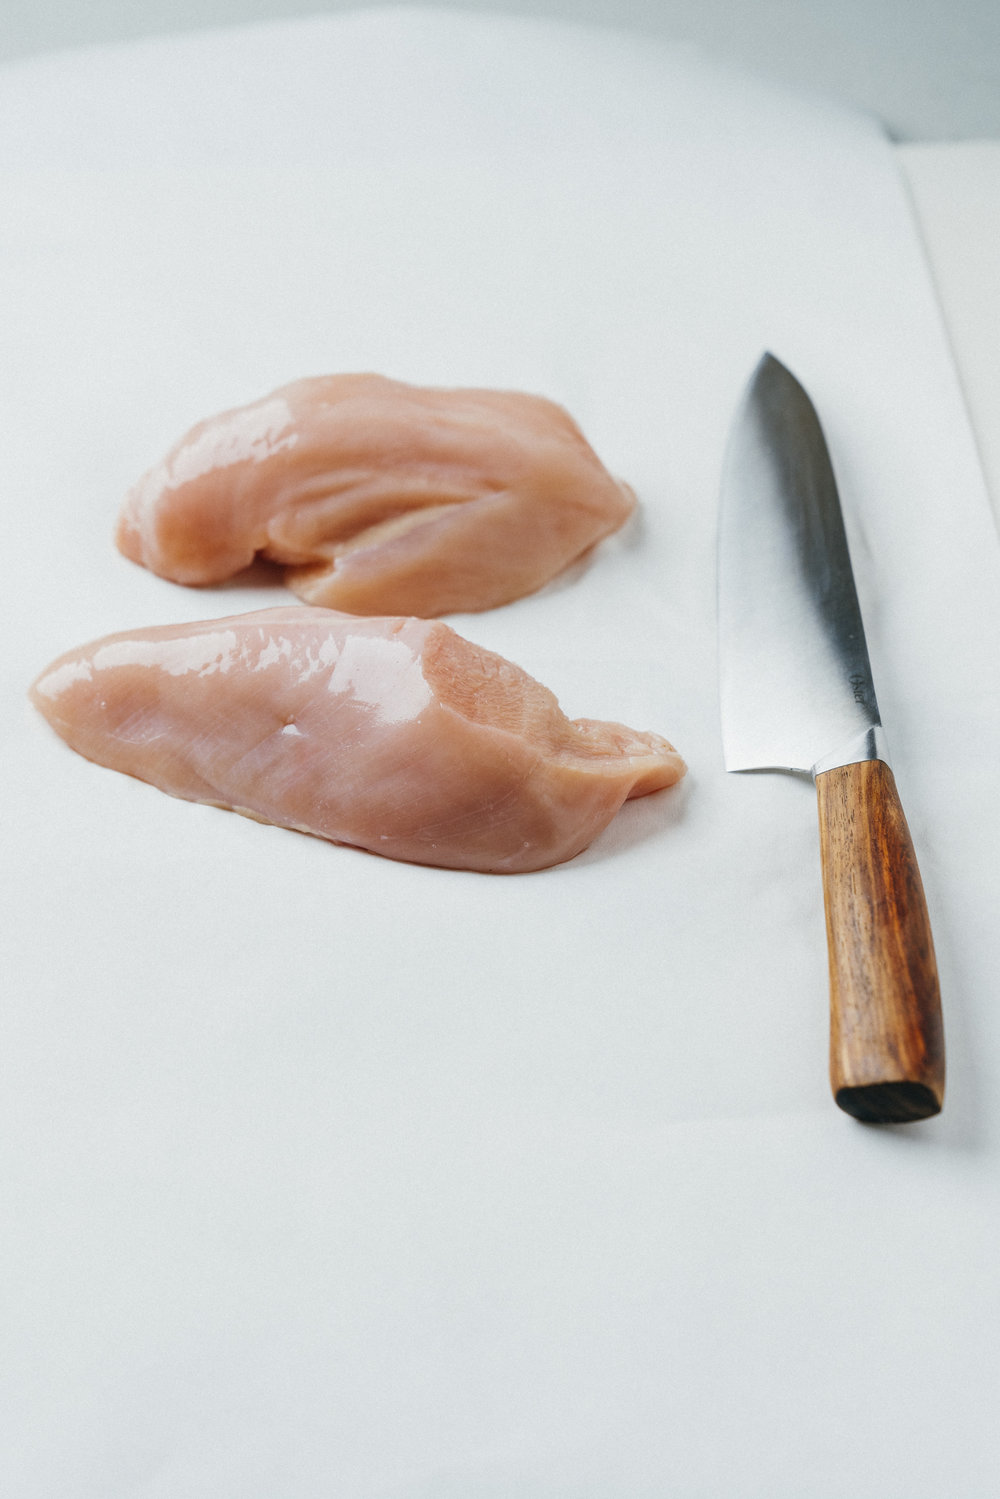 Chicken breasts clearly lack the heavier fats of red meat.